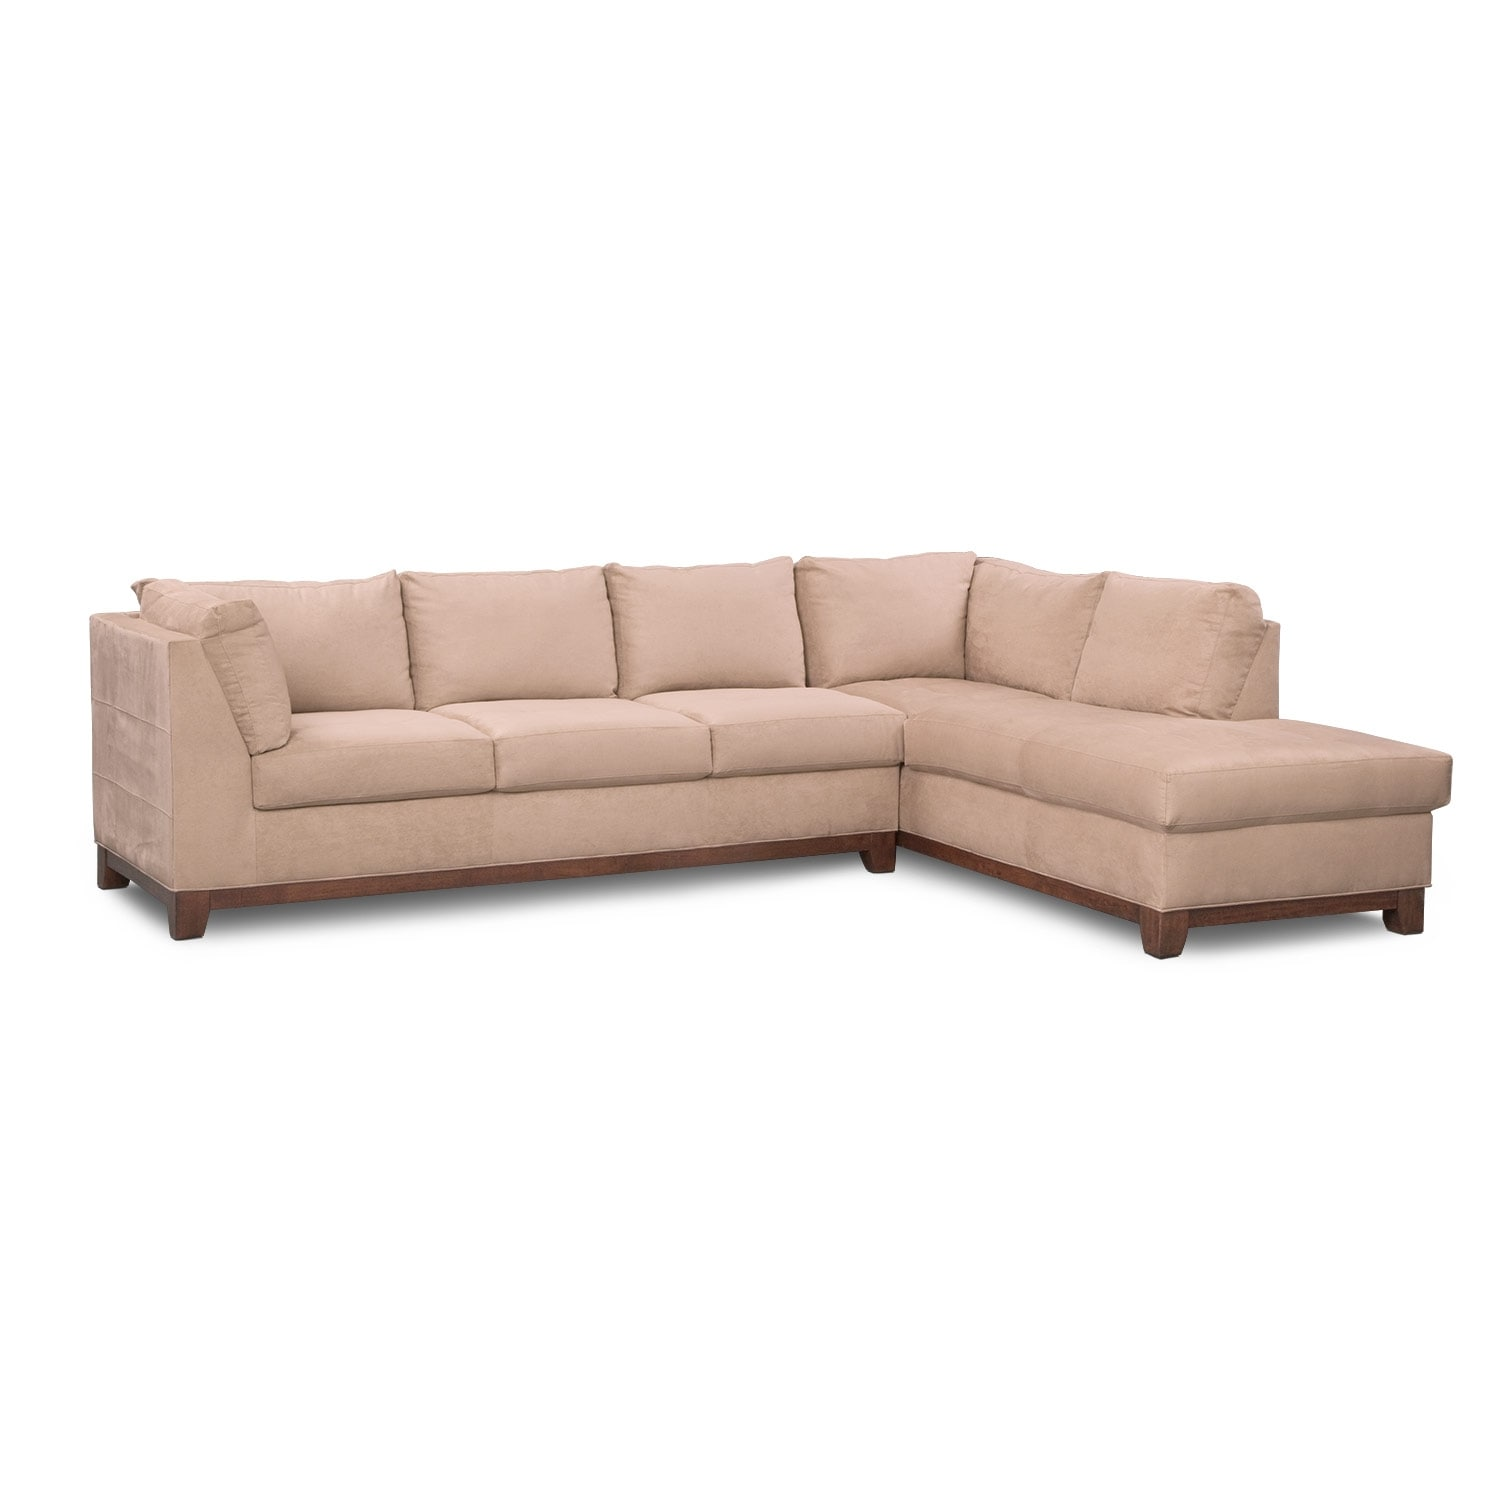 soho 2 piece sectional with chaise value city furniture and mattresses rh valuecityfurniture com Soho District Soho Sectional Couch